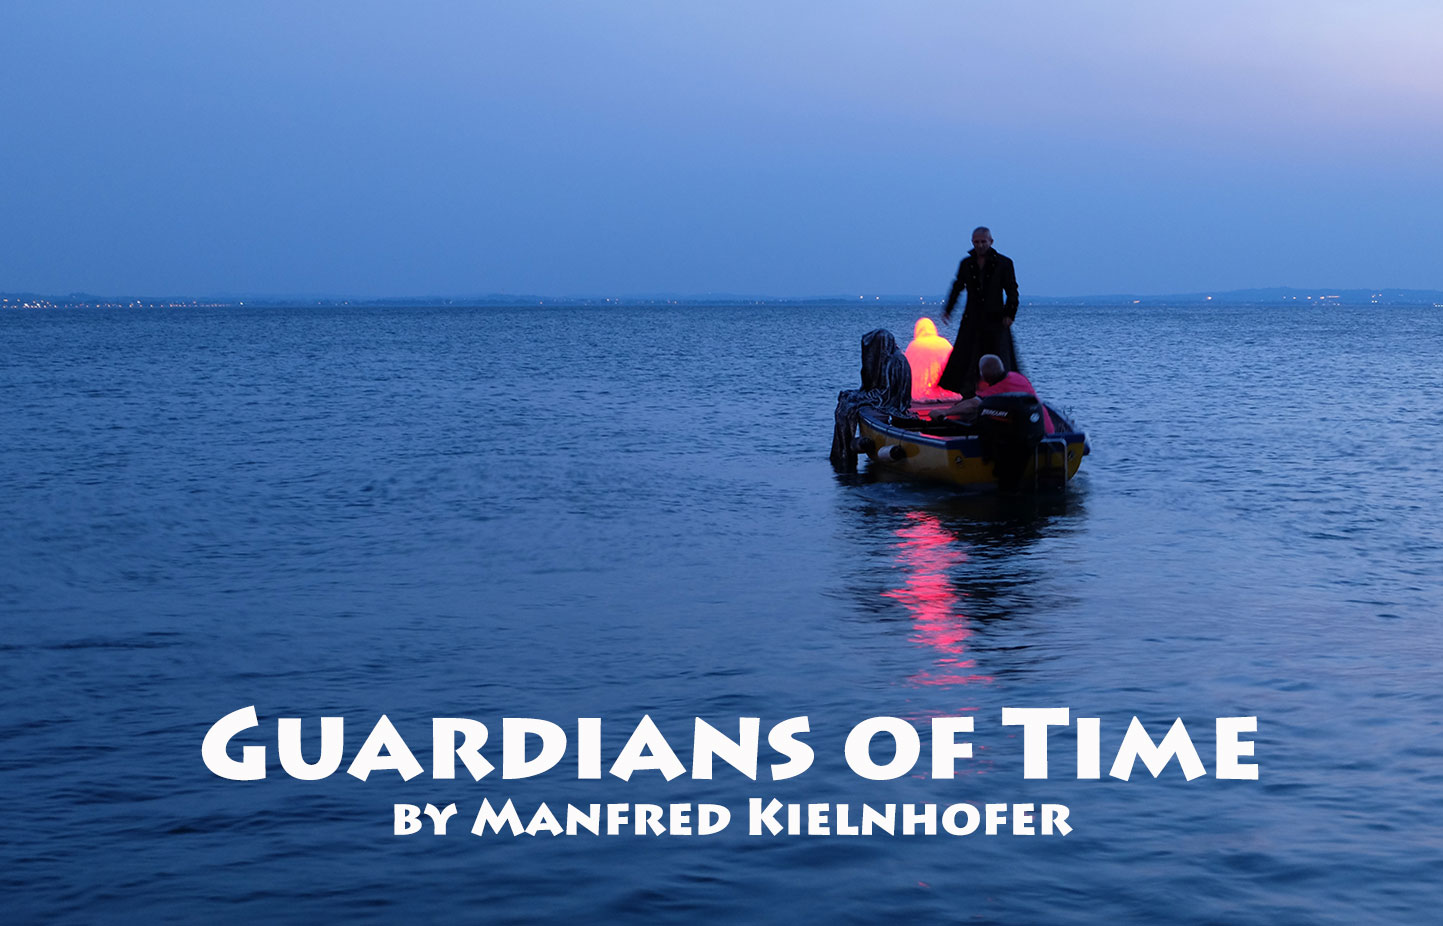 lazise-largo-de-guarda-italia--kouba-designkooperative-austria-guardians-of-time-manfred-kili-kielnhofer-contemporary-art-design-arts-arte-sculpture-theater-foto-film-performnce-avalon-ferryman-378 - Kopie